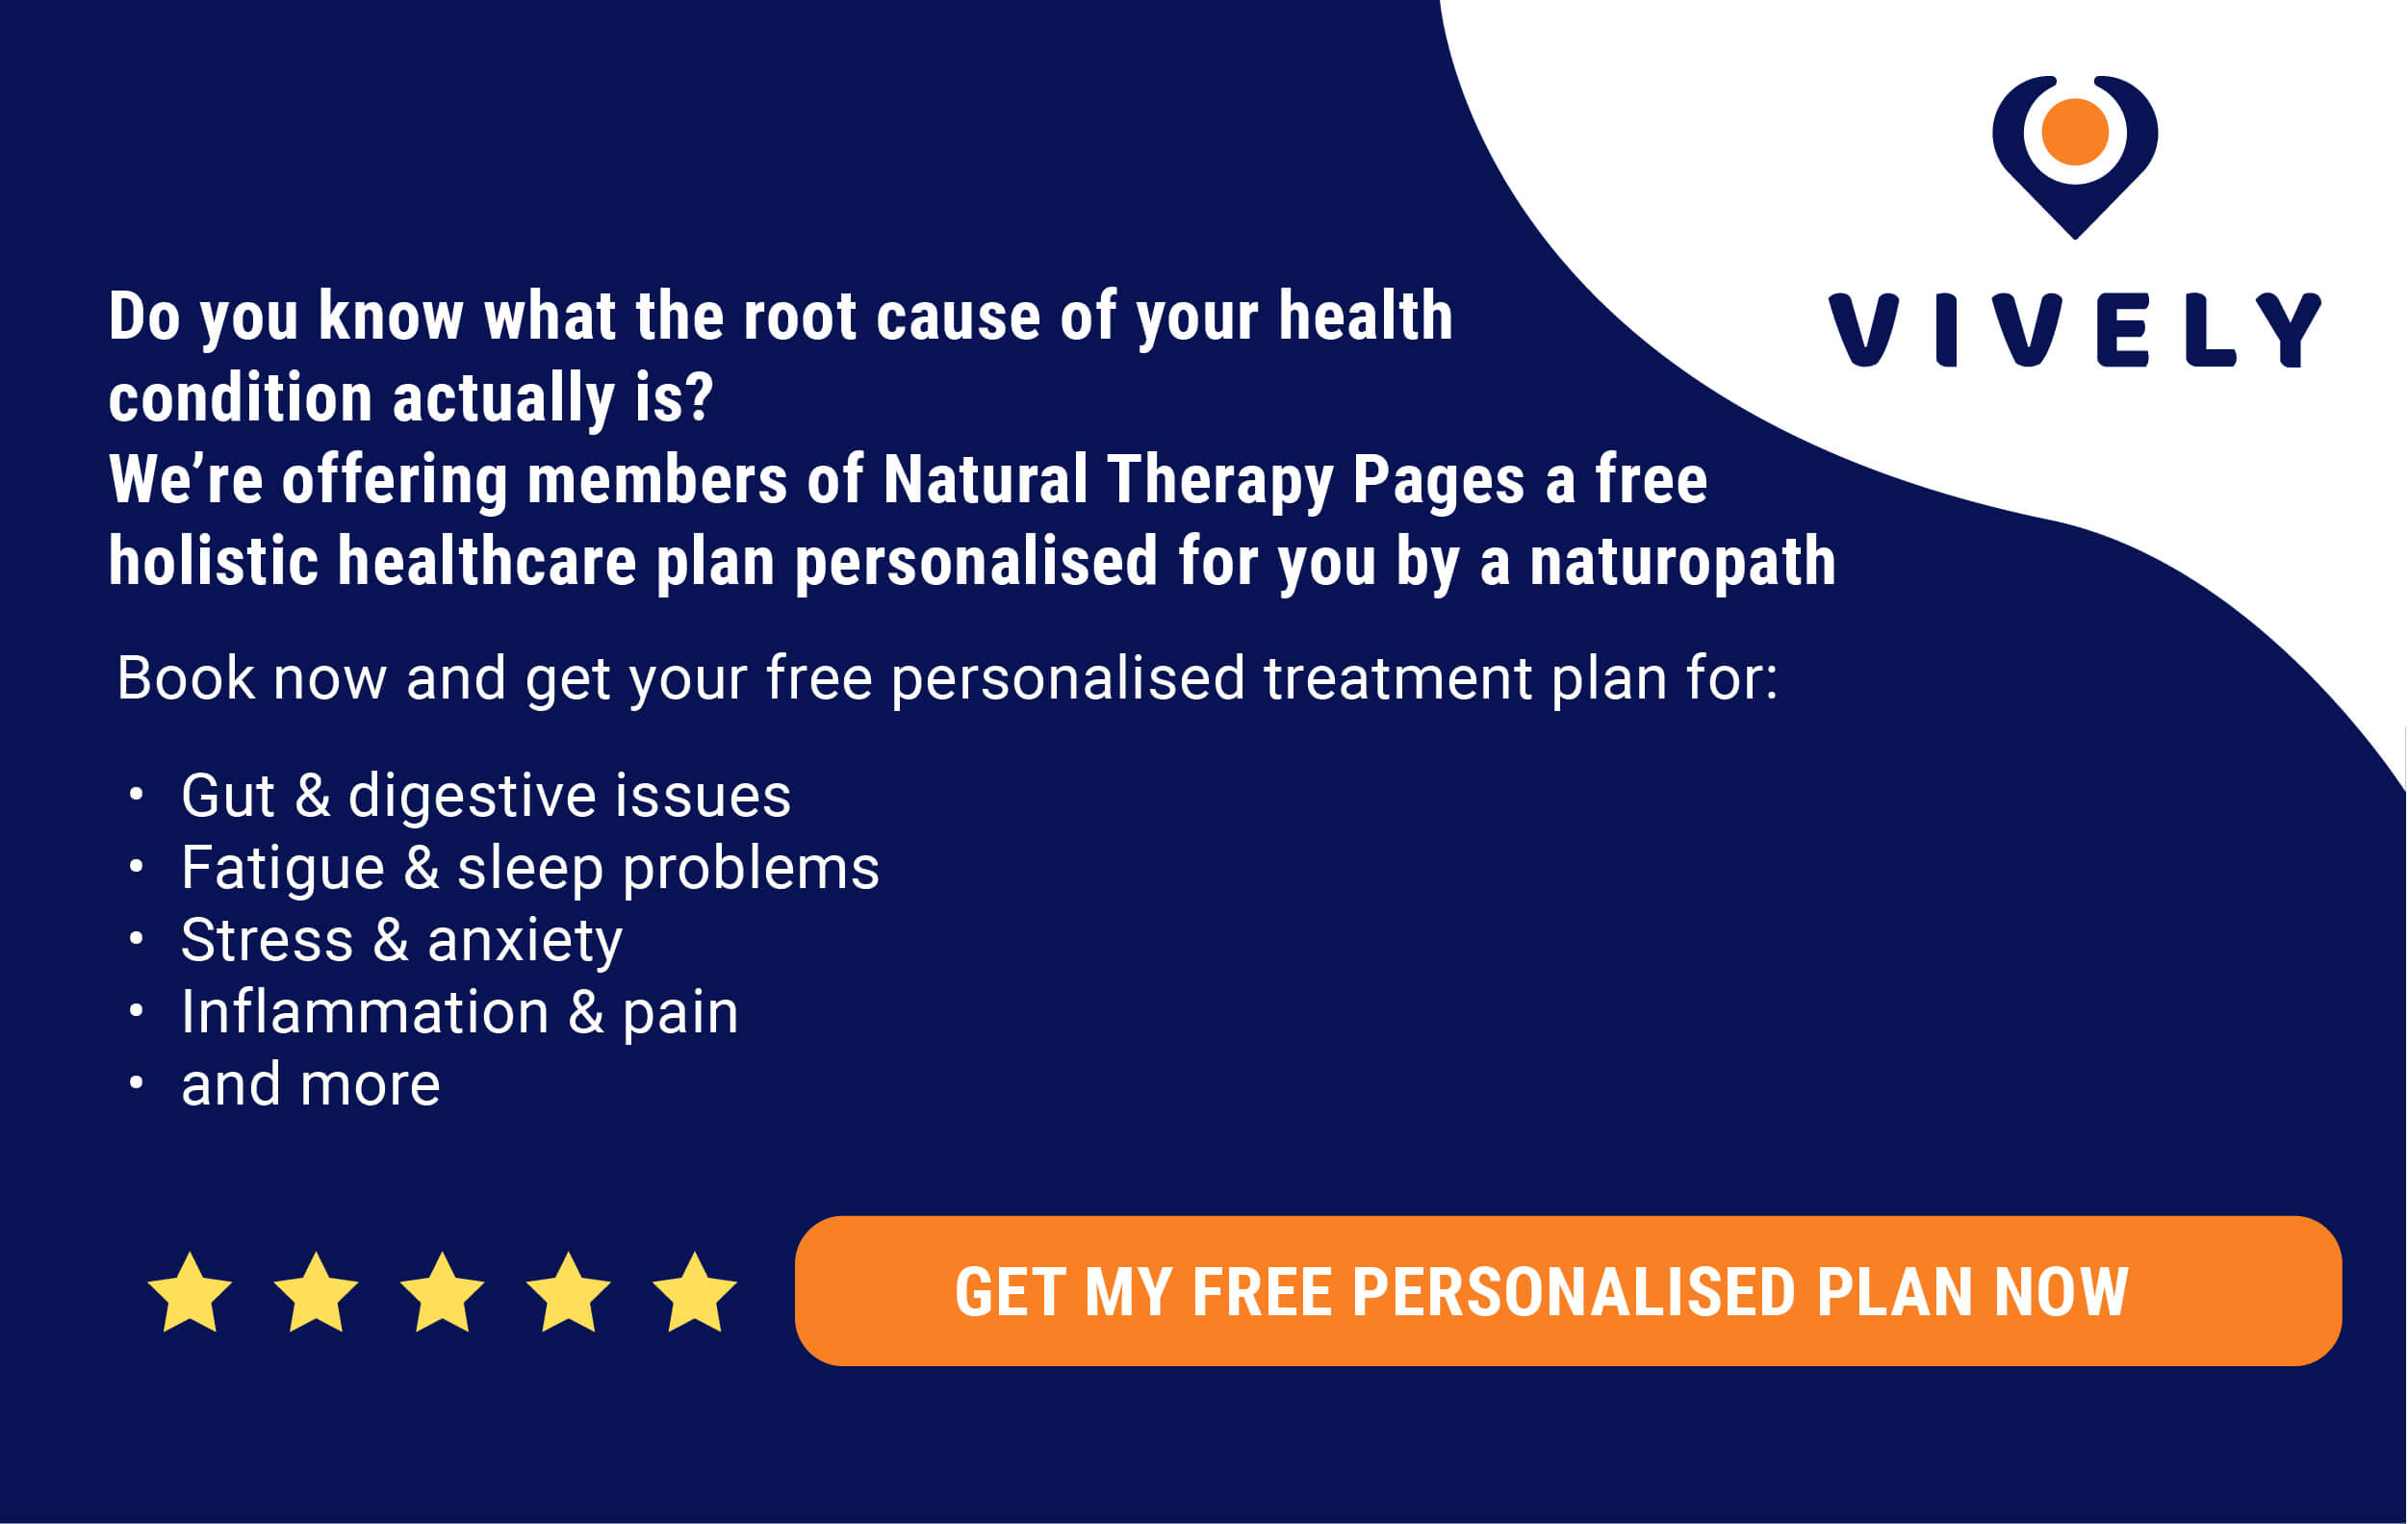 Vively - Get holistic health advice from the comfort of your home.